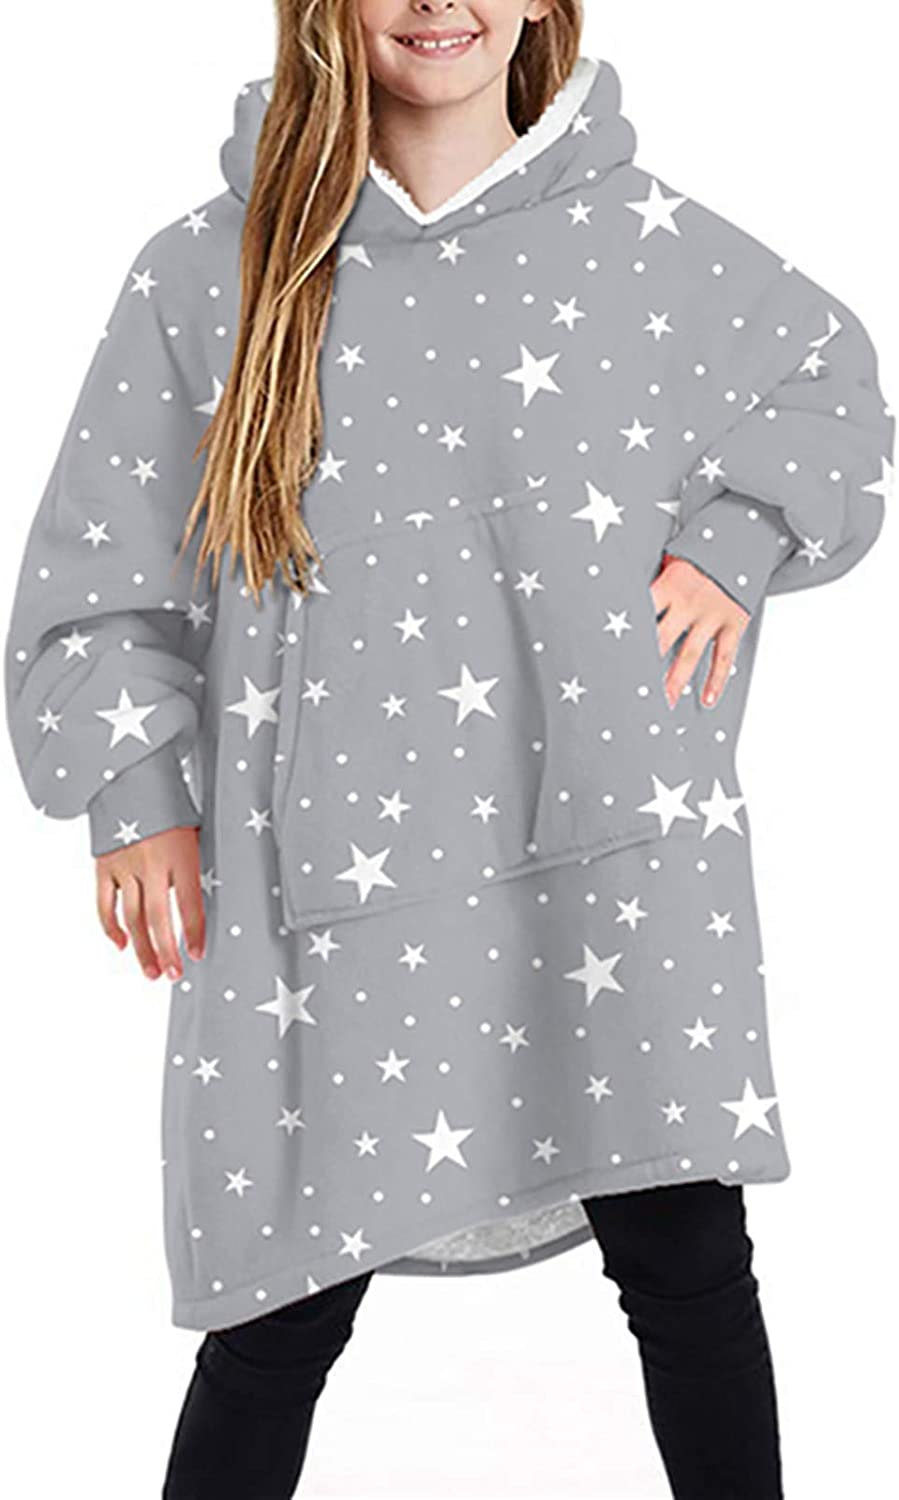 Kids Limited time trial price Oversized Wearable Very popular Blanket Fluffy Snuggle Hooded Sweatshirt